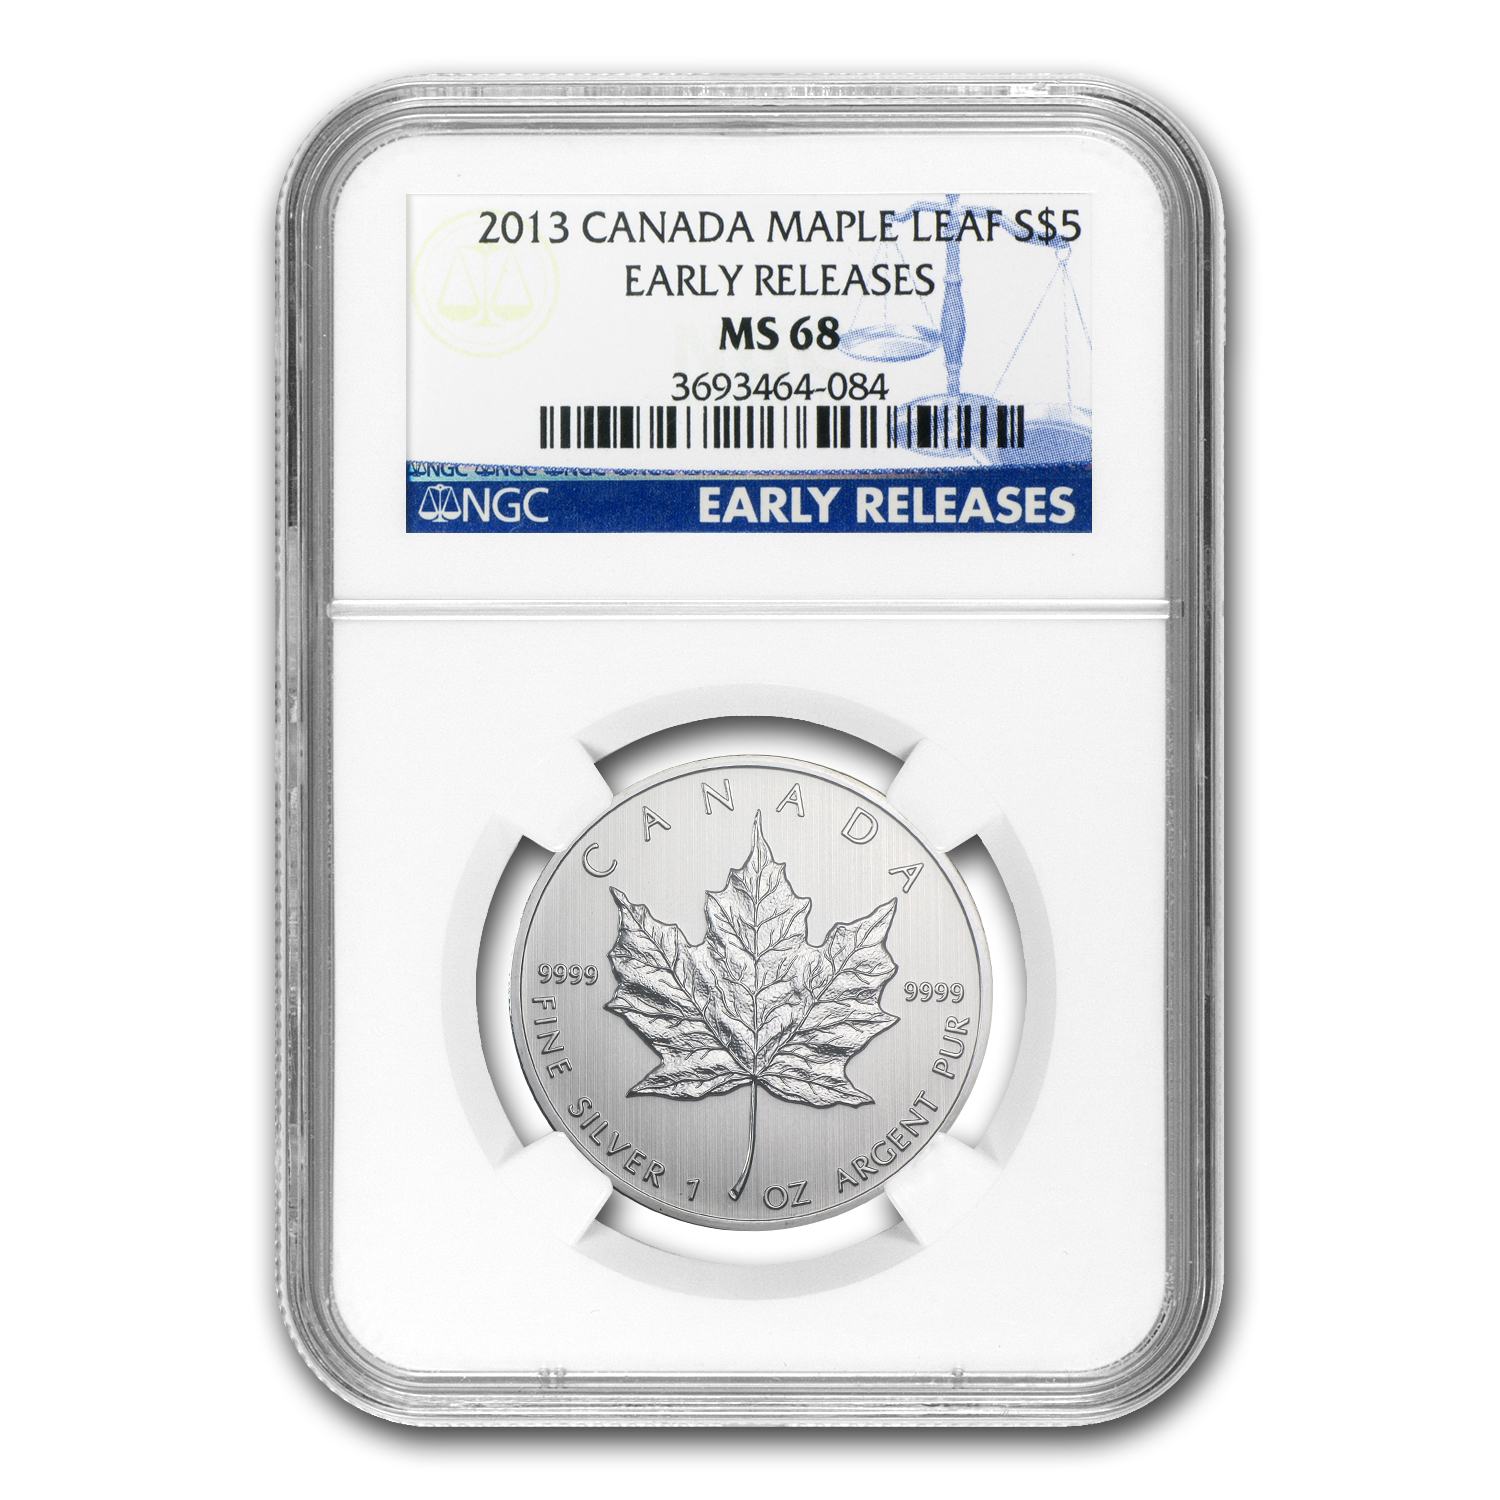 2013 Canada 1 oz Silver Maple Leaf MS-68 NGC (Early Releases)